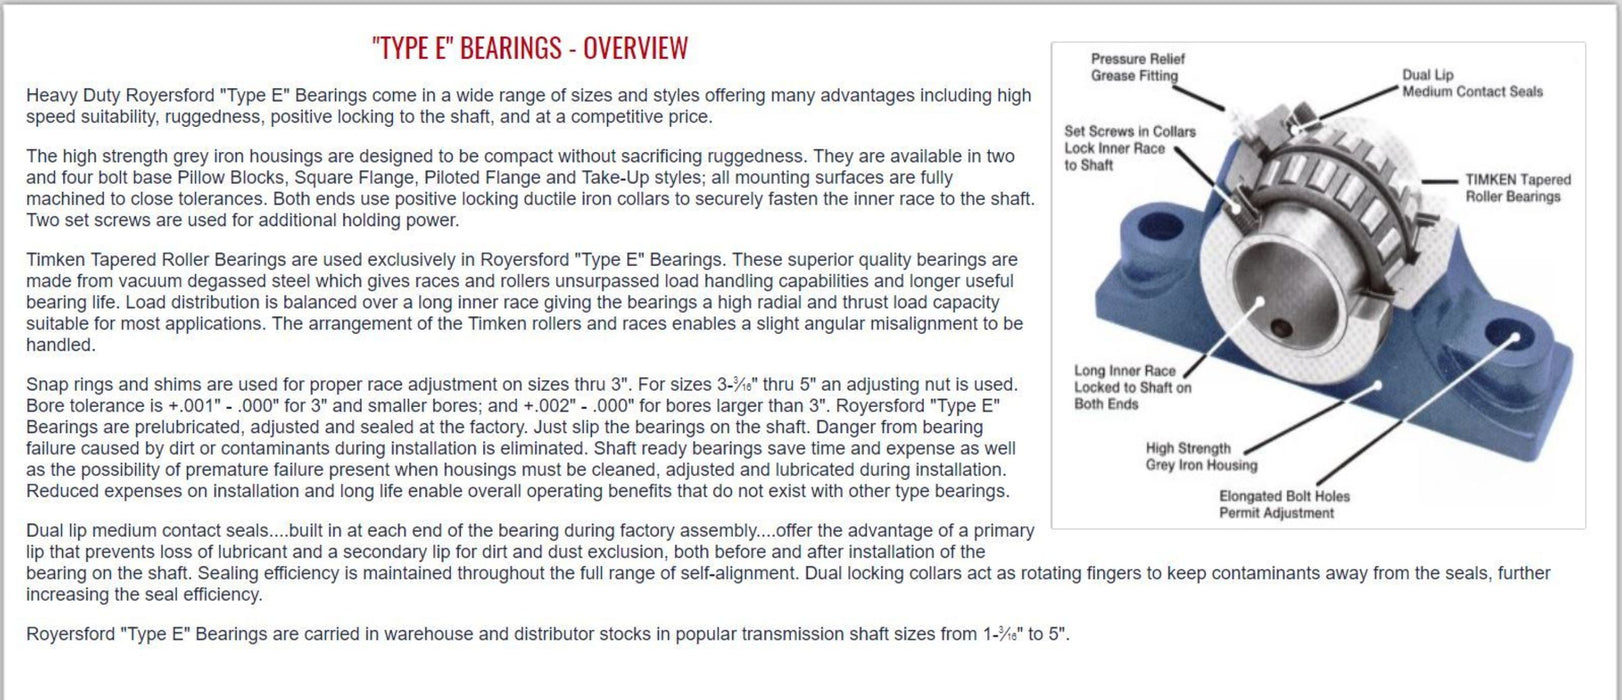 20-04-0304, ROYERSFORD TYPE E 4-Bolt Pillow Block Bearing, 3-1/4 with Timken Tapered Roller Bearings